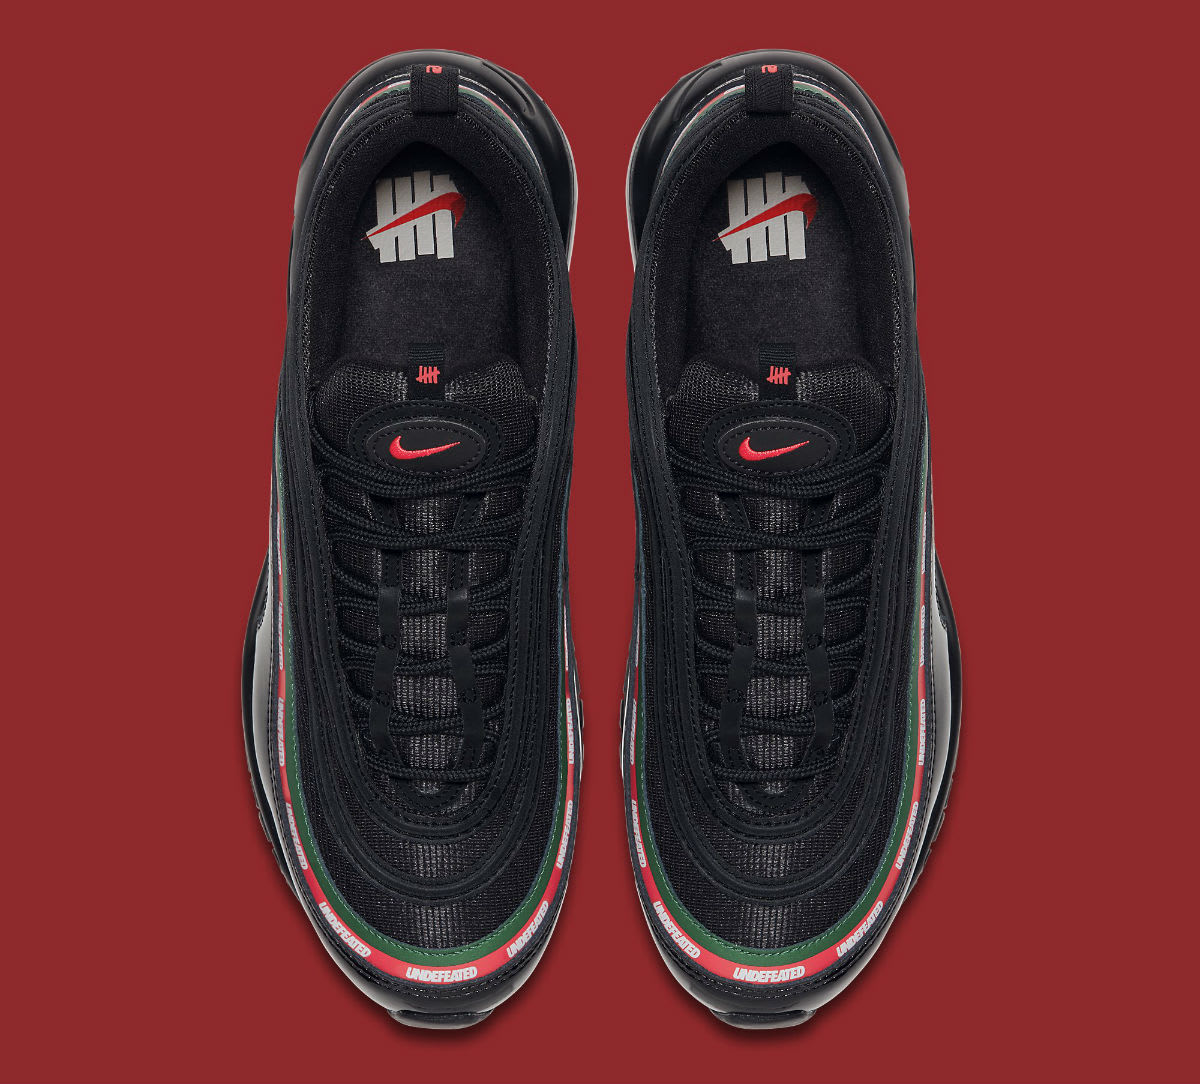 Undefeated x Nike Air Max 97 Black Release Date Top AJ1986-001